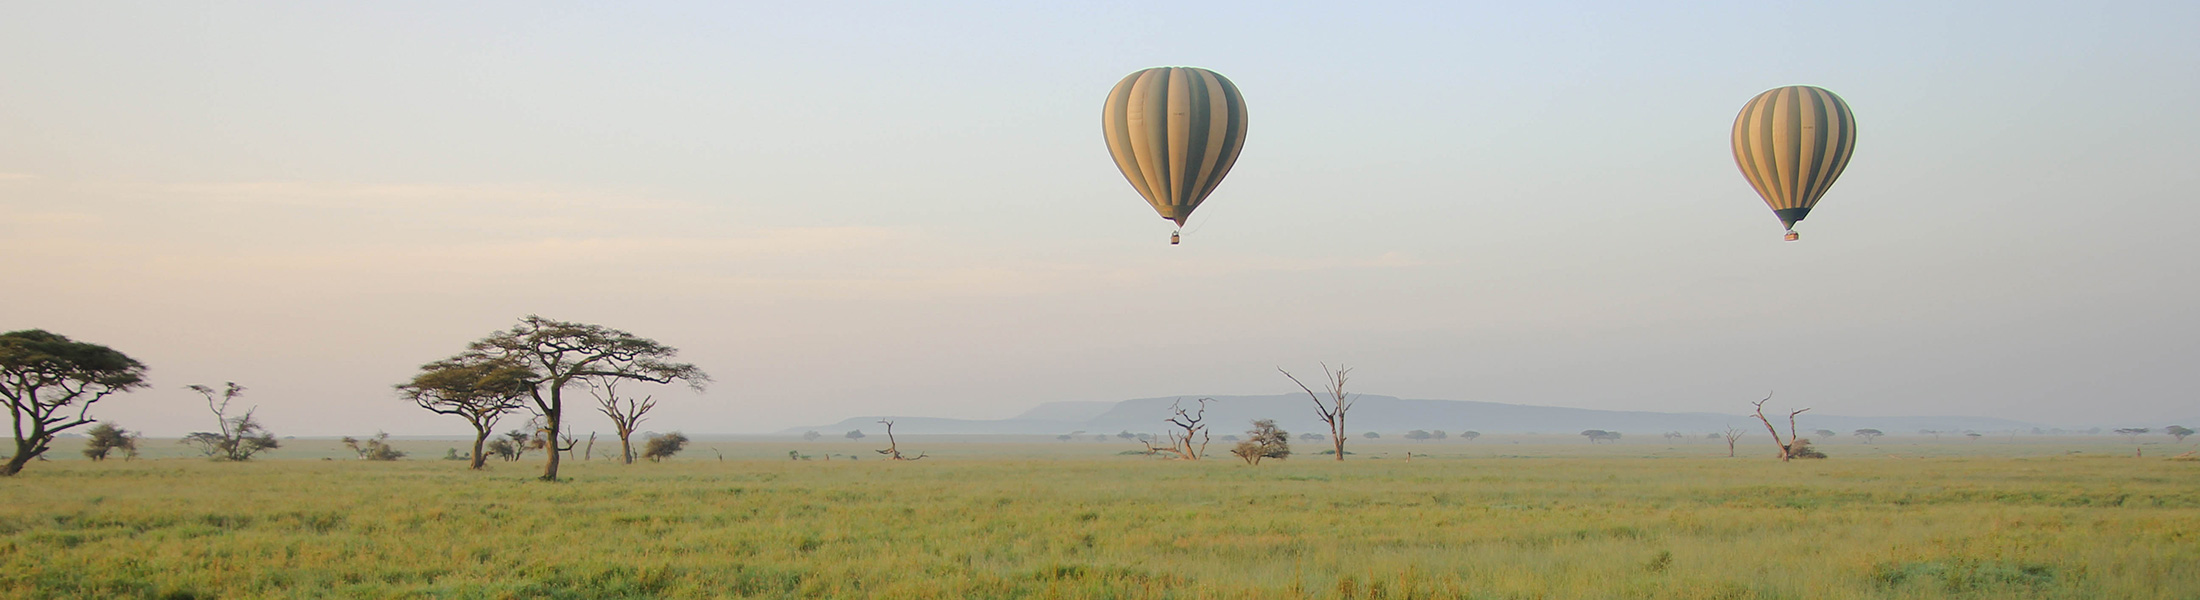 Hot Air Balloons over the African Savannah